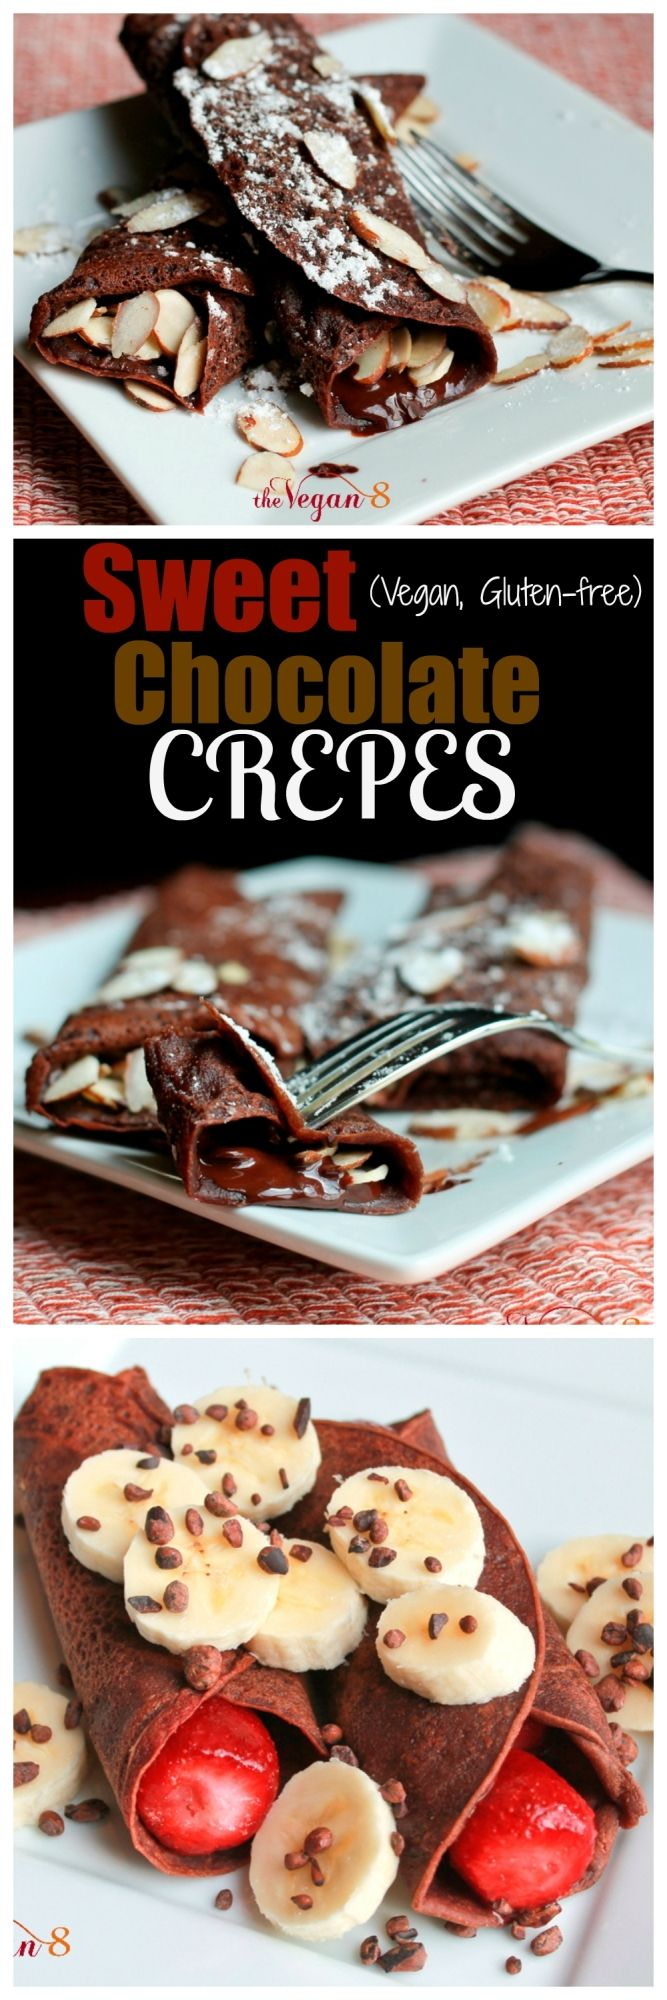 I am so excited to share this recipe with you today! I am guest posting today for Angelaover atCanned-Time. I love Angela's blog and all ofher amazing recipes. She is truly creative.I have tried to make vegan, gluten-free and oil-free crepes several times. The same issues kept arising...wrong texture or falling apart. After all, traditional crepes are nothing but eggs